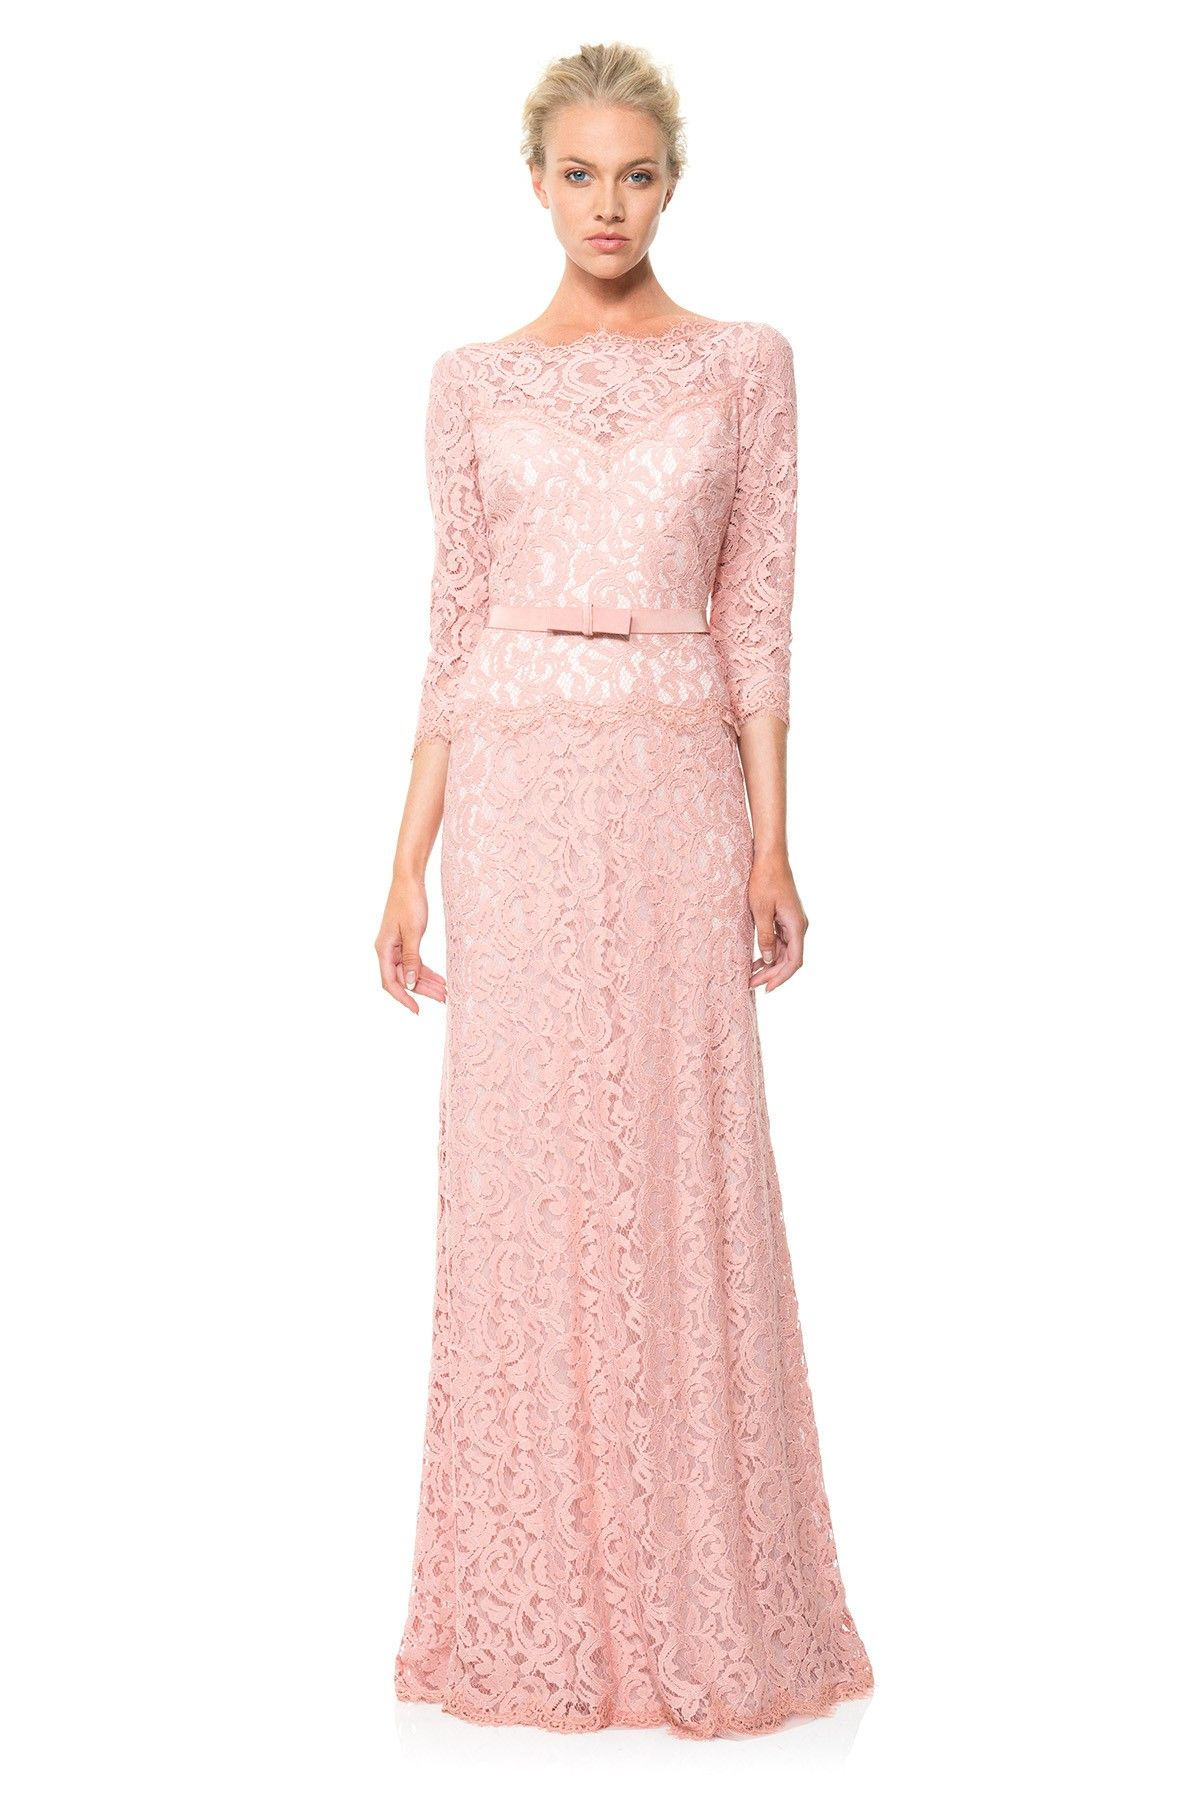 Lace Boatneck ¾ Sleeve Gown with Grosgrain Ribbon Belt | Tadashi ...